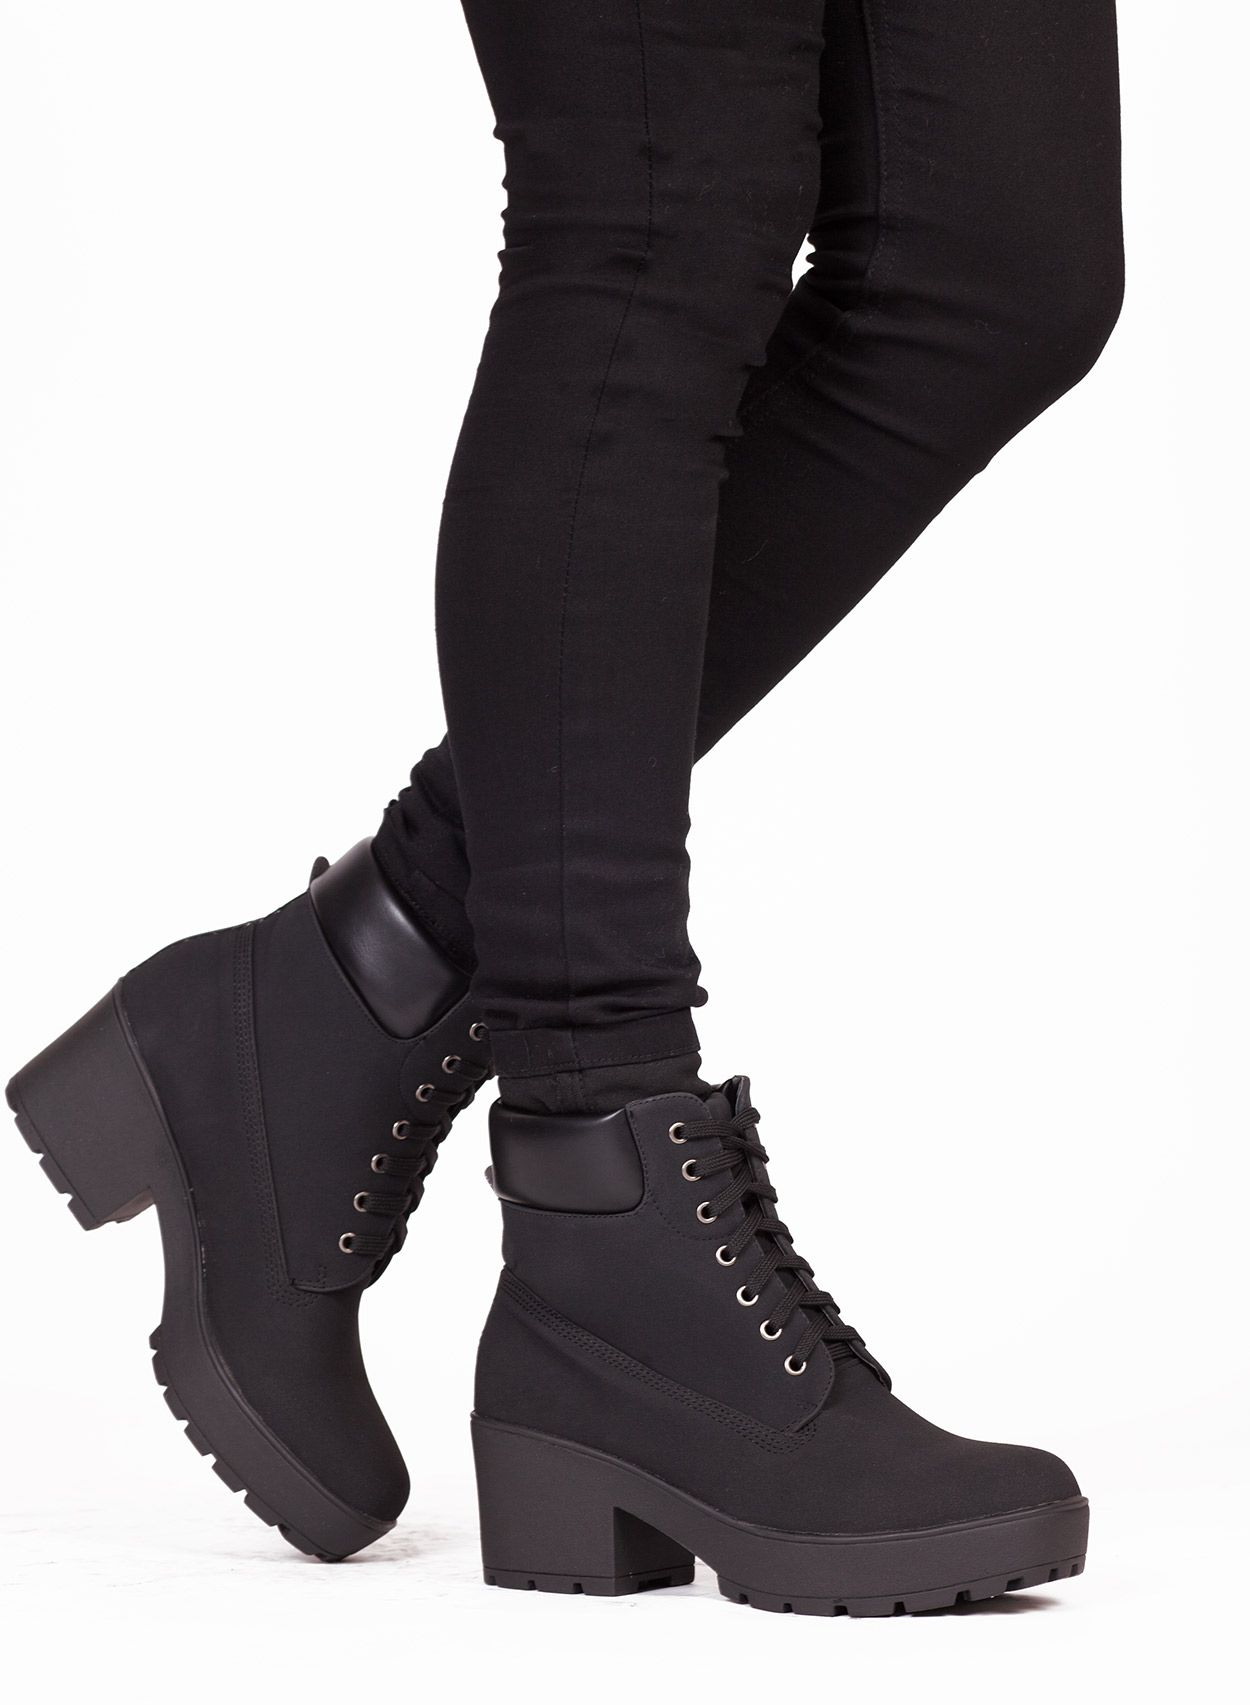 loveclothing.com,, $47.70